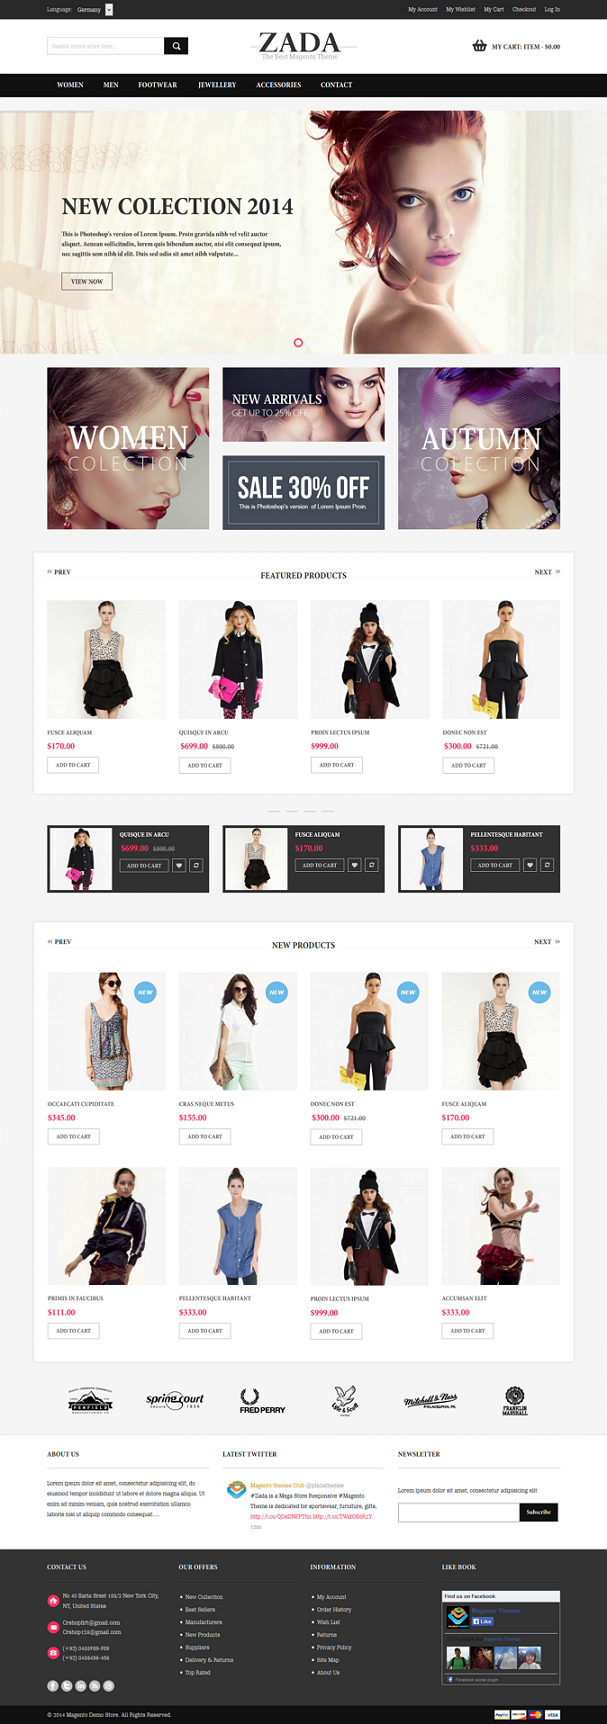 Zada is a Mega Store Responsive Magento Theme is dedicated for sportswear, furniture, gifts, sou ...